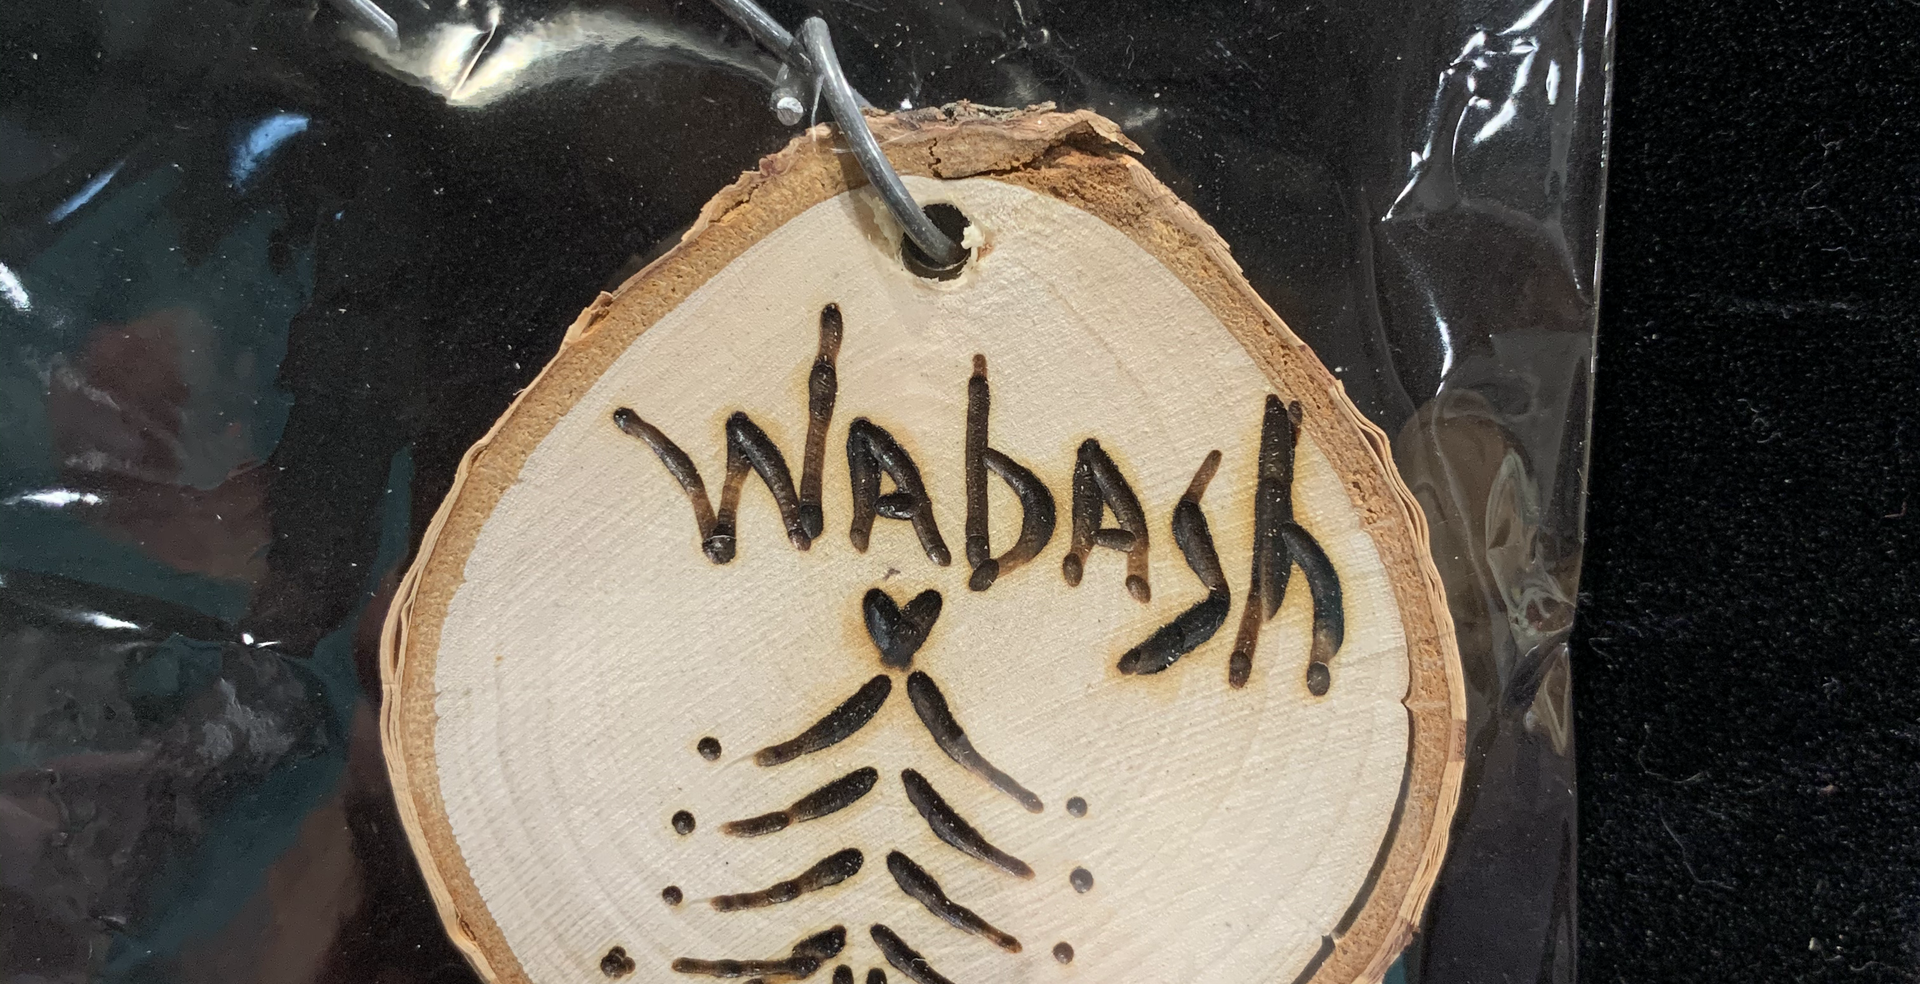 Wabash Tree Ornament 1 $6.50